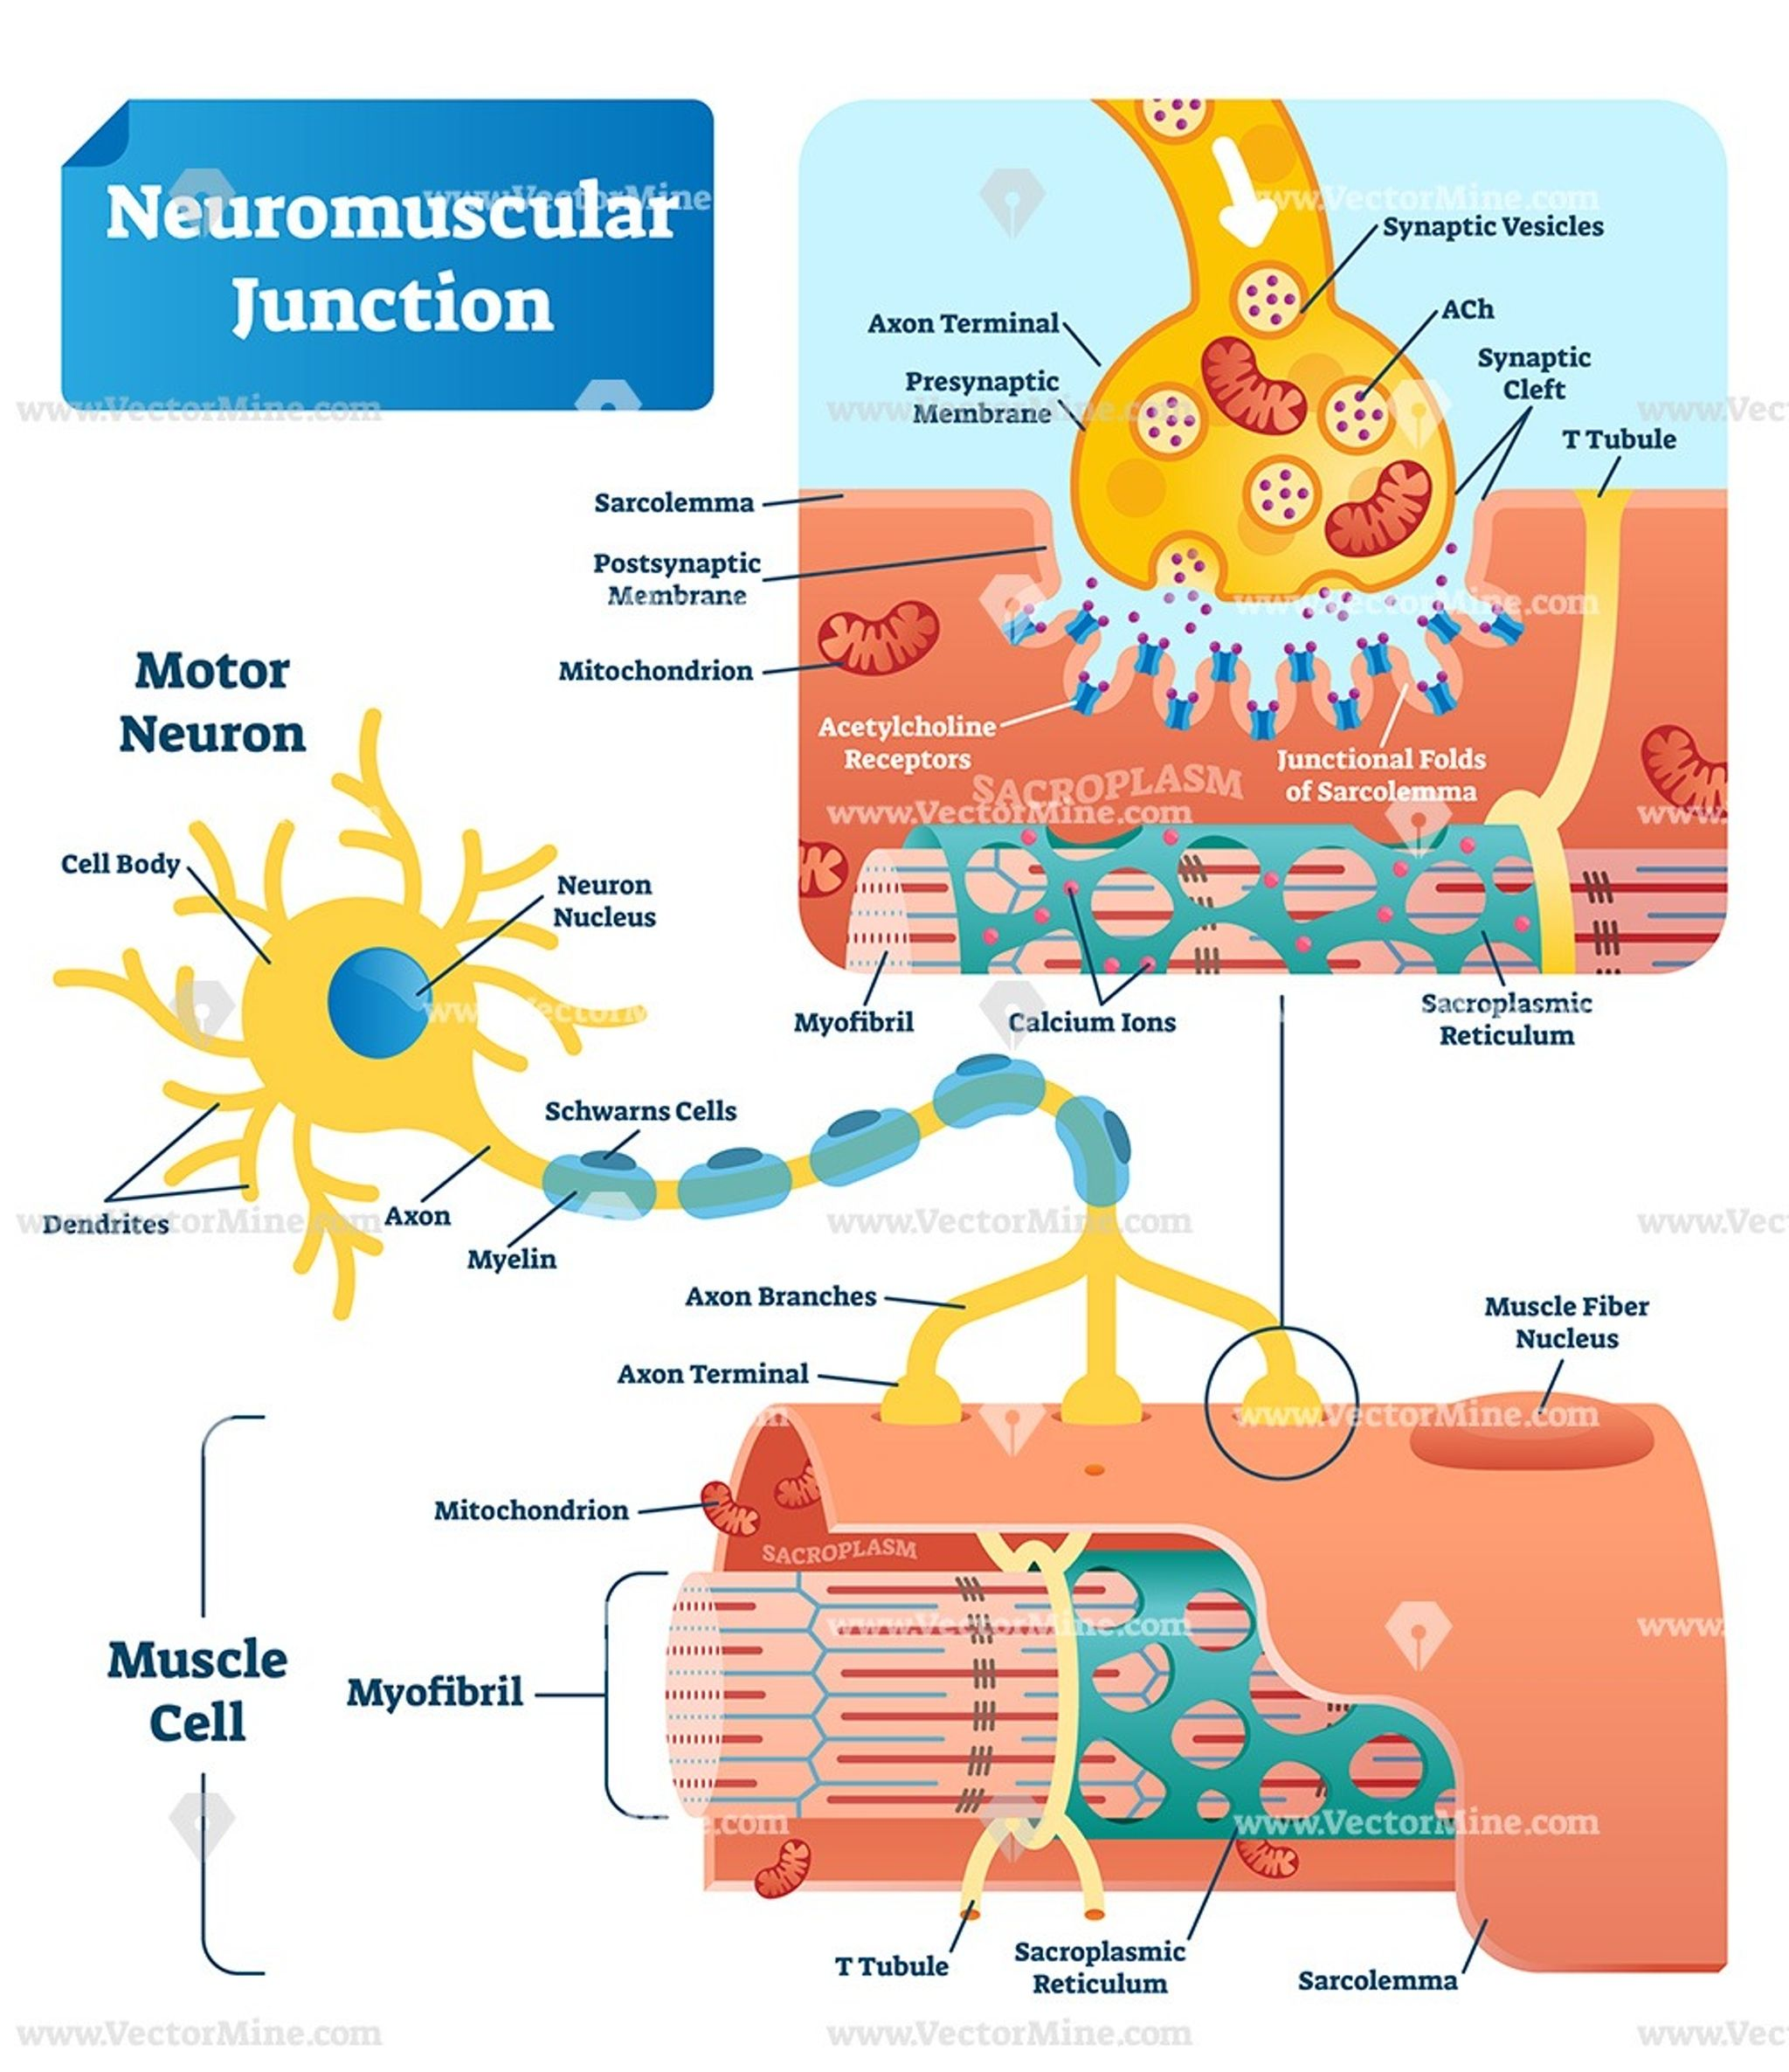 Neuromuscular Junction Biological Vector Illustration